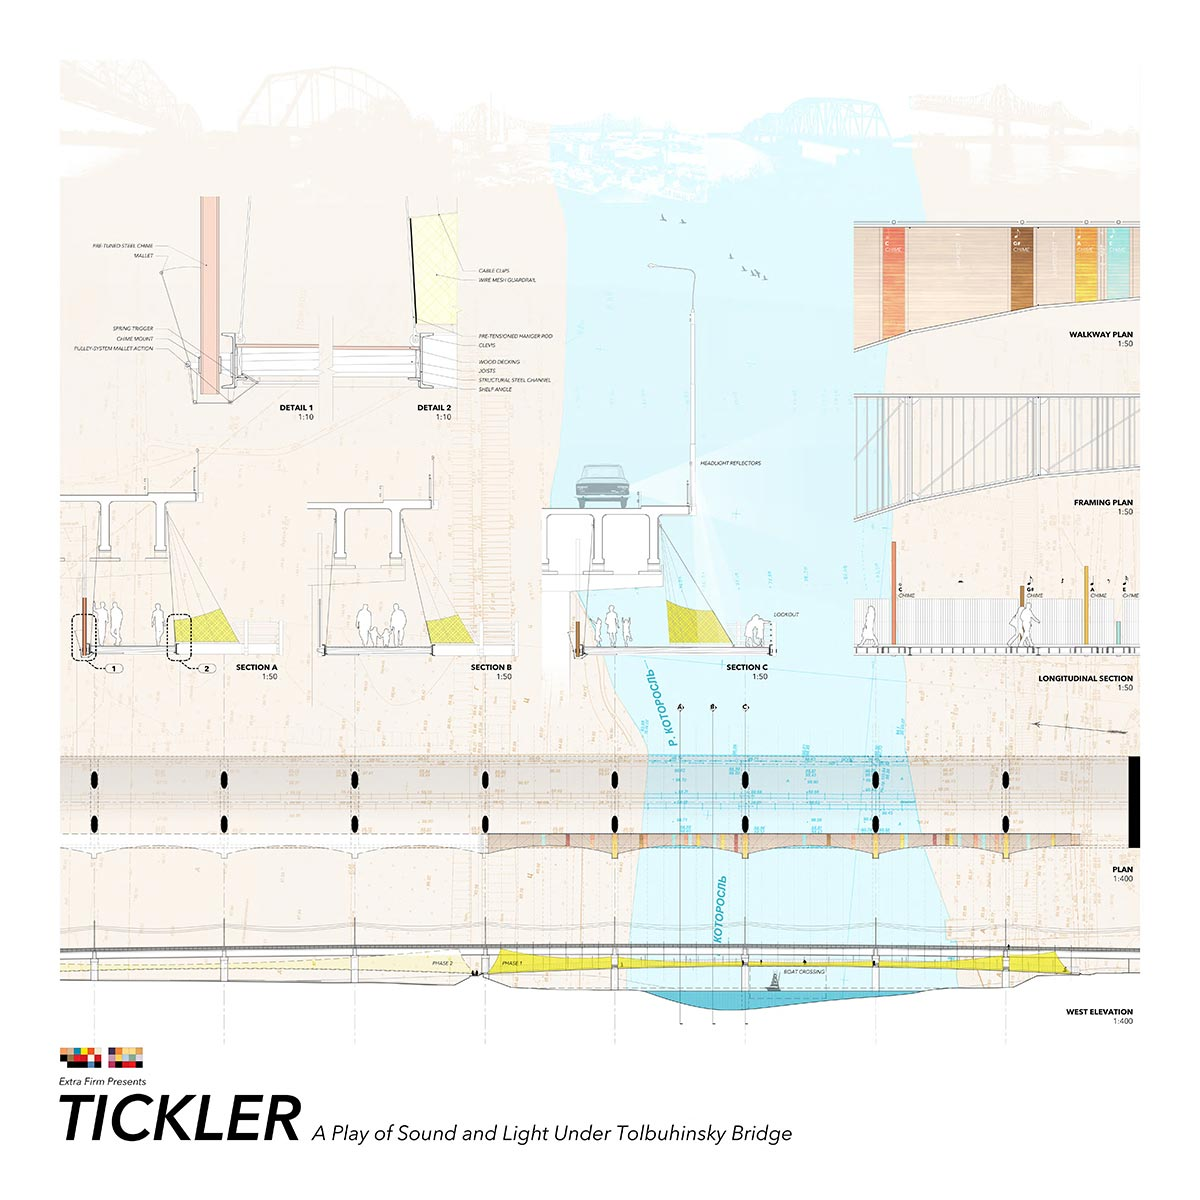 TICKLER: A Play of Sound and Light